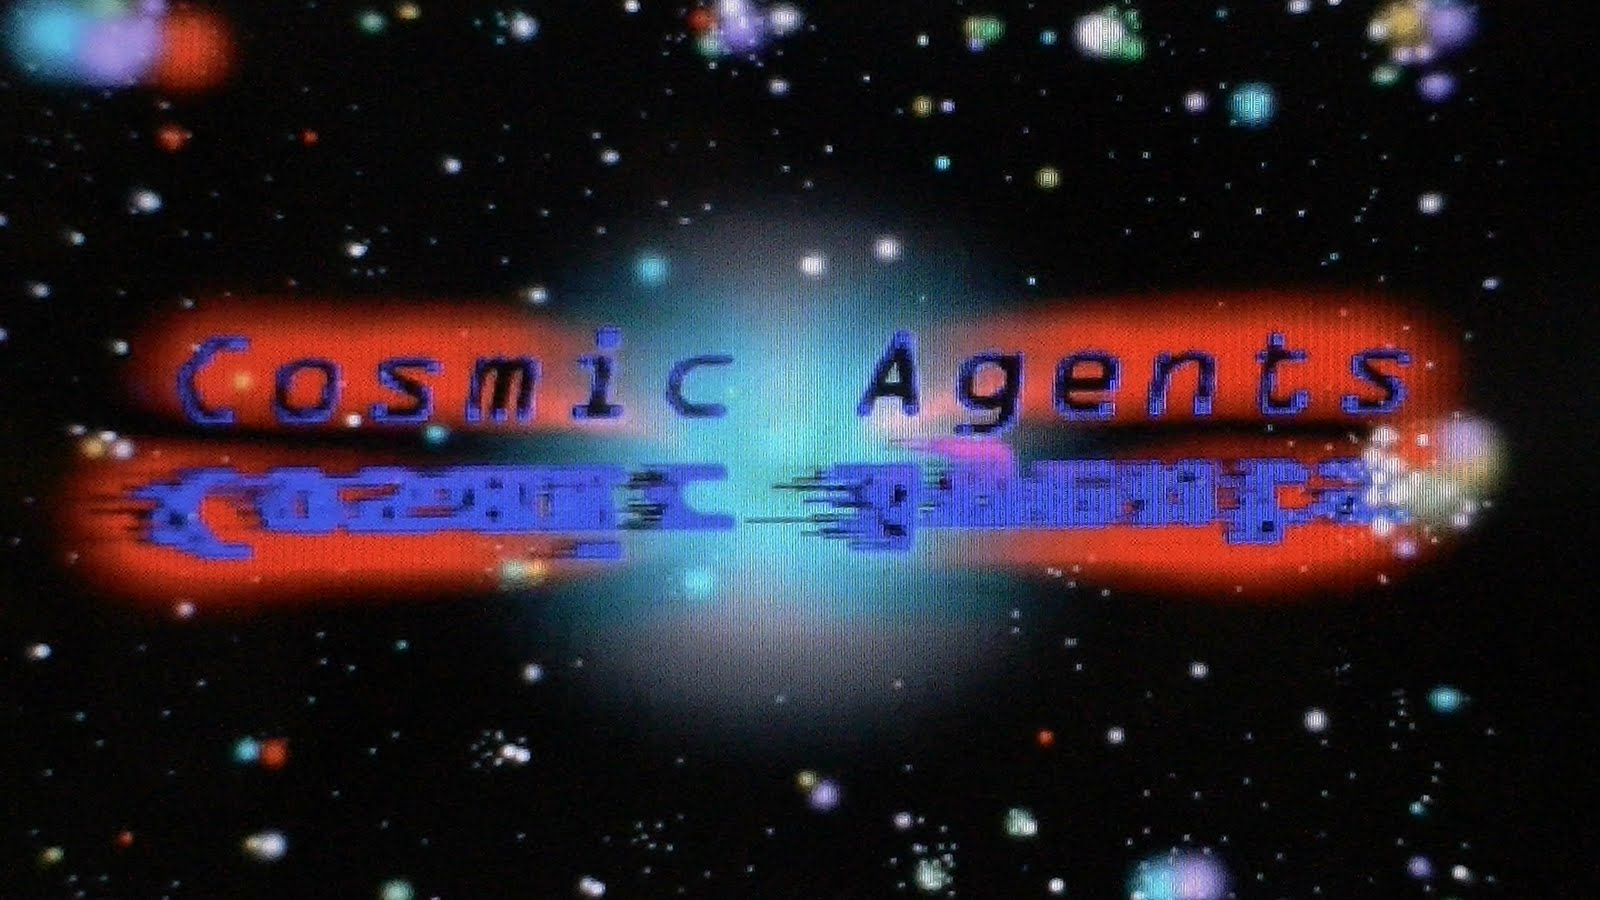 Cosmic Agents (Episodes 1 to part of 4, still in production).